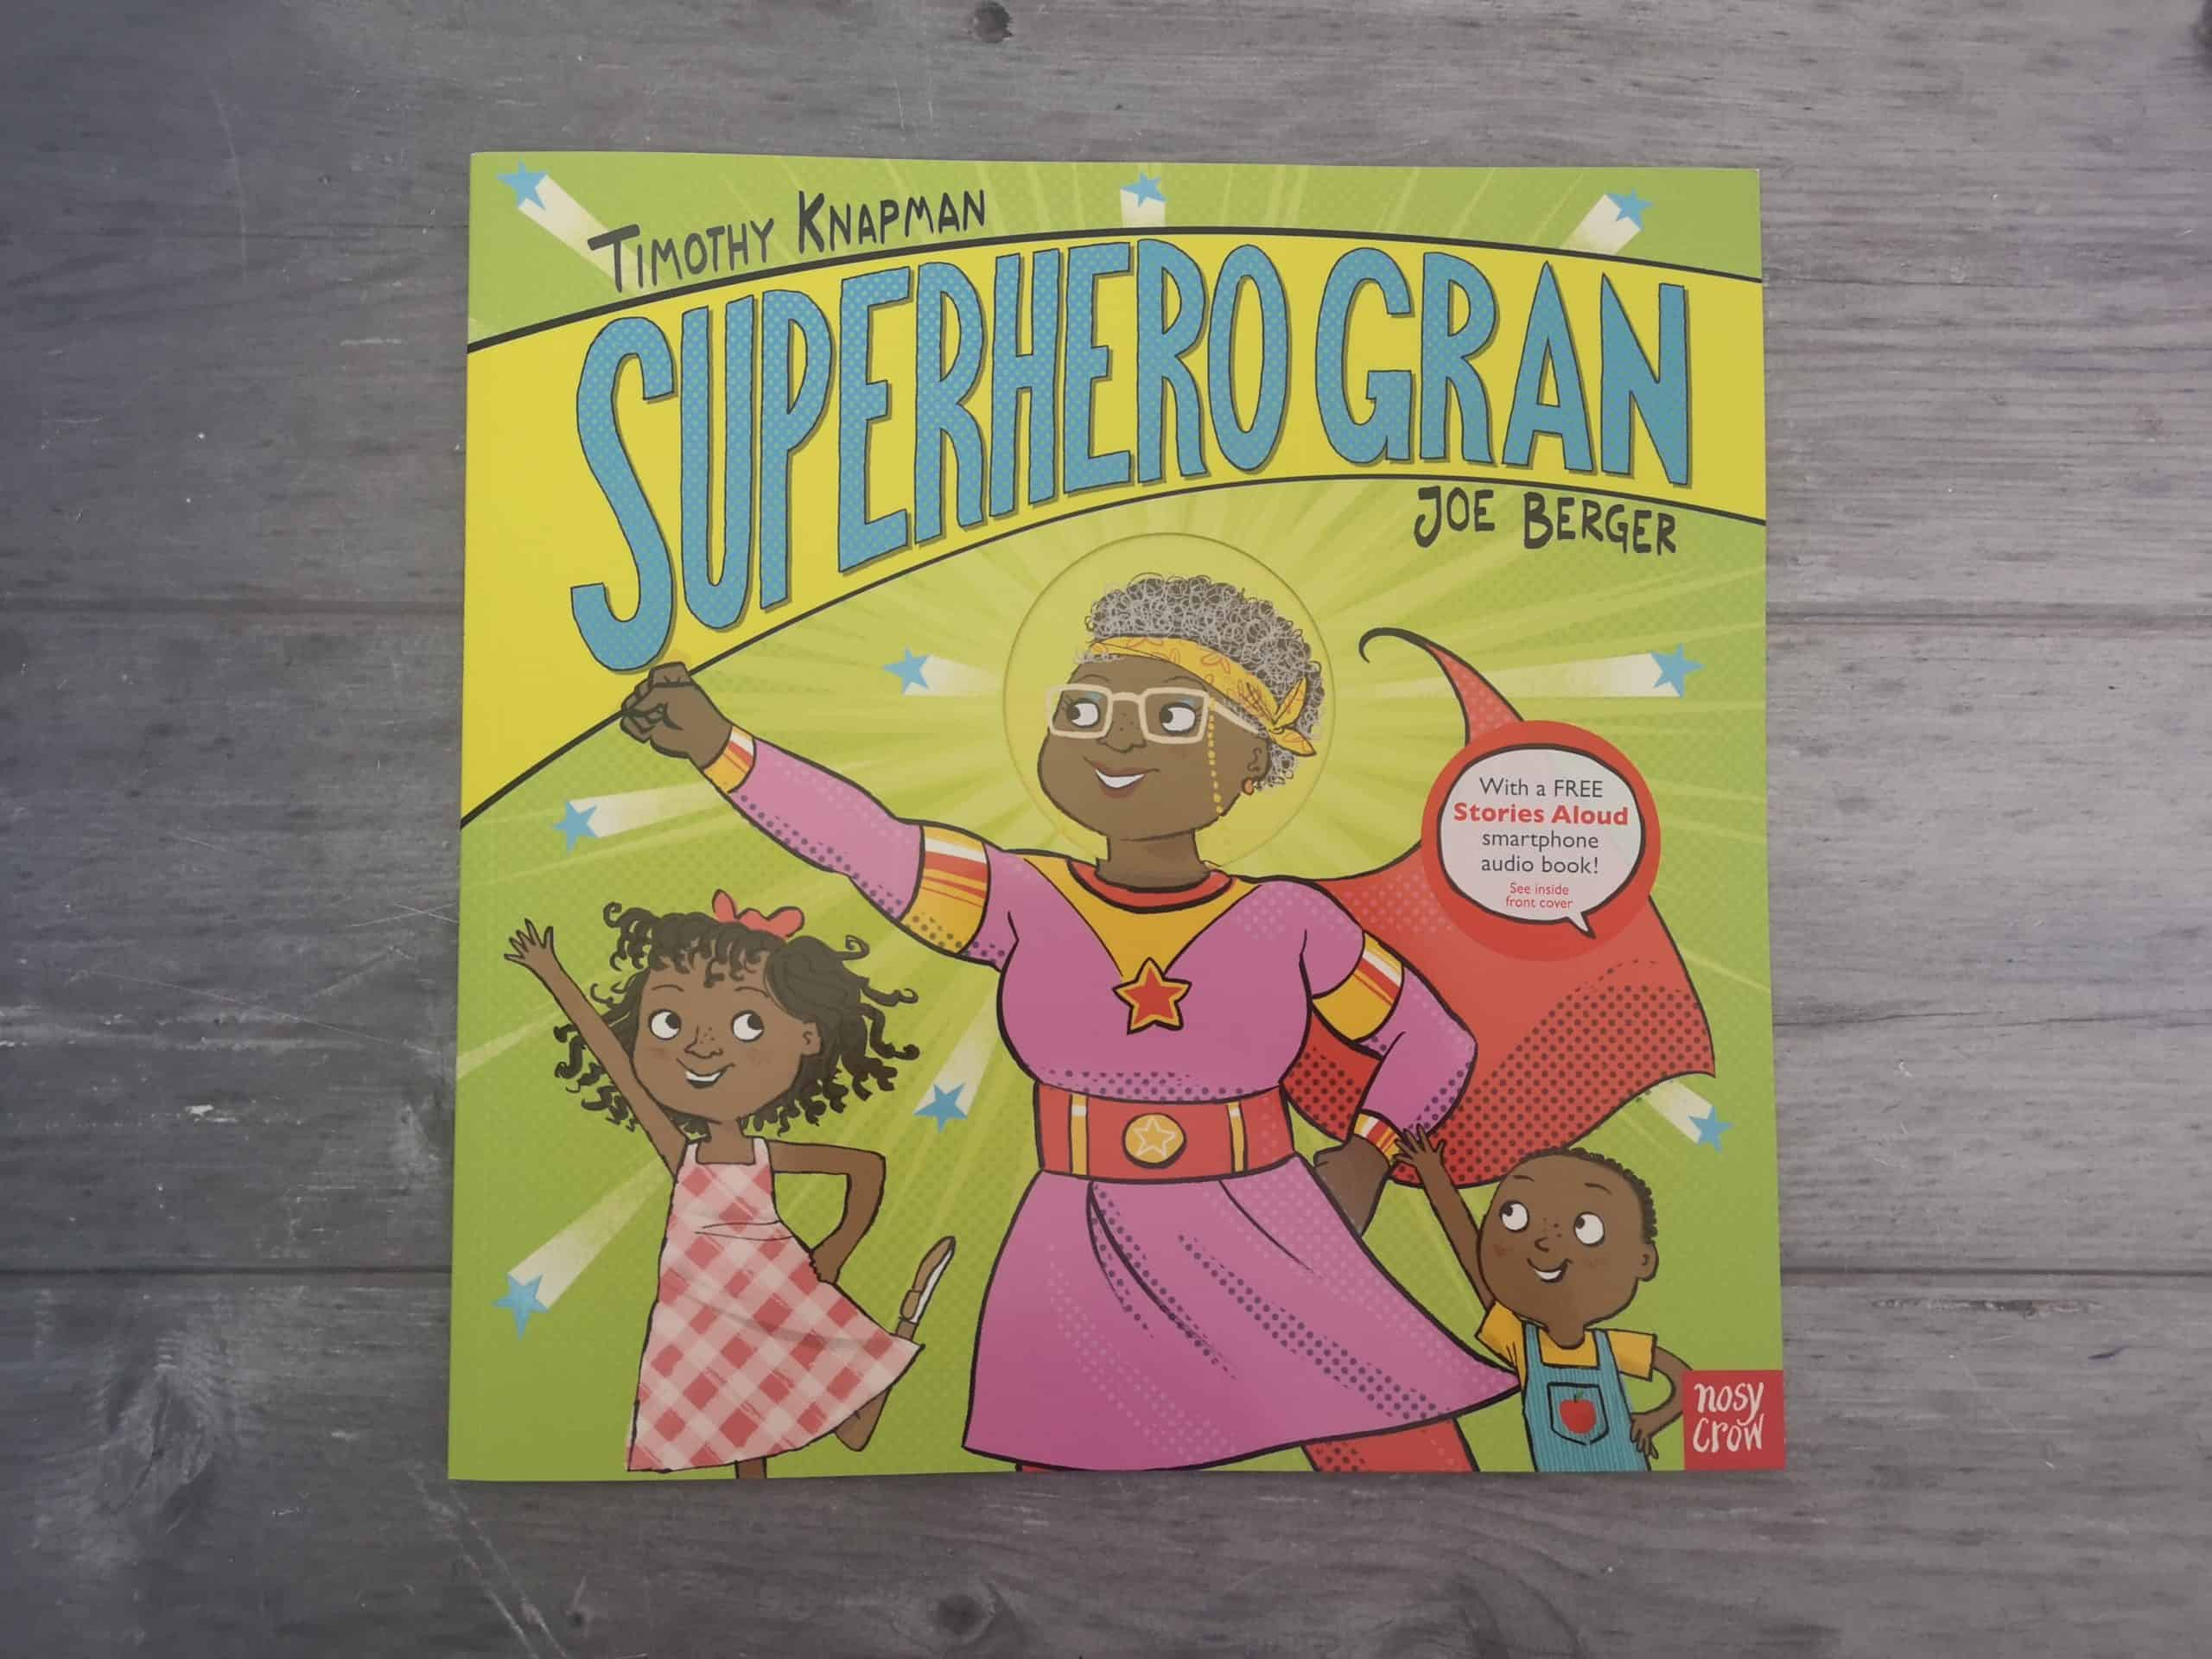 Superhero Gran by by Timothy Knapman and Joe Berger